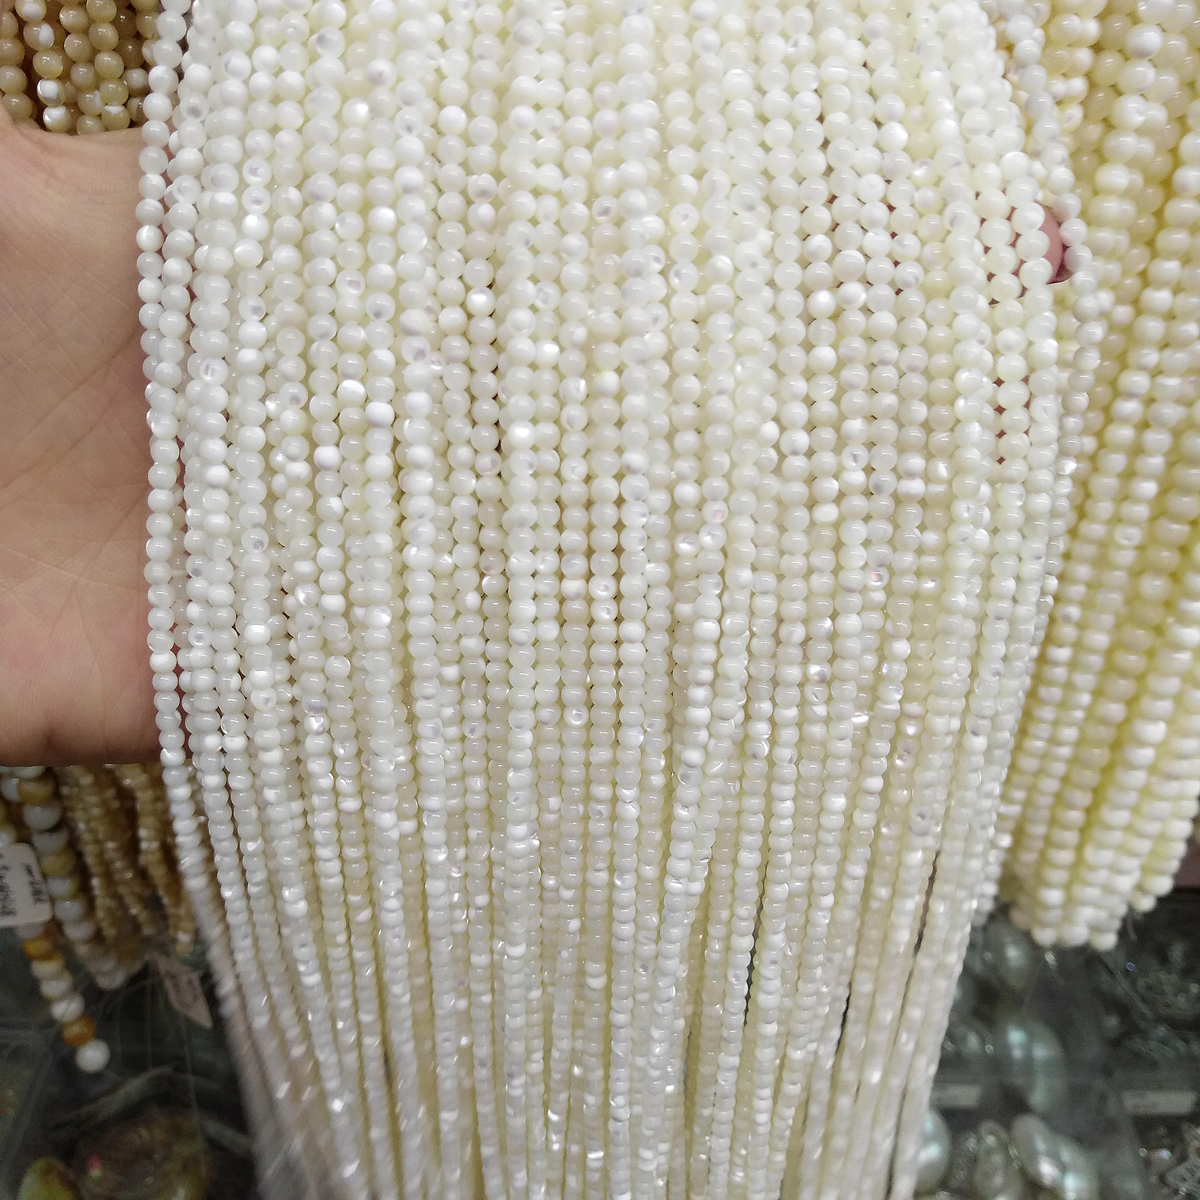 Wholesale <font><b>Natural</b></font> Shell <font><b>Beads</b></font> White Round Seashell <font><b>Stone</b></font> <font><b>Beads</b></font> Small <font><b>Beads</b></font> for Jewelry Making DIY Bracelet Necklace Gifts 15.5'' image